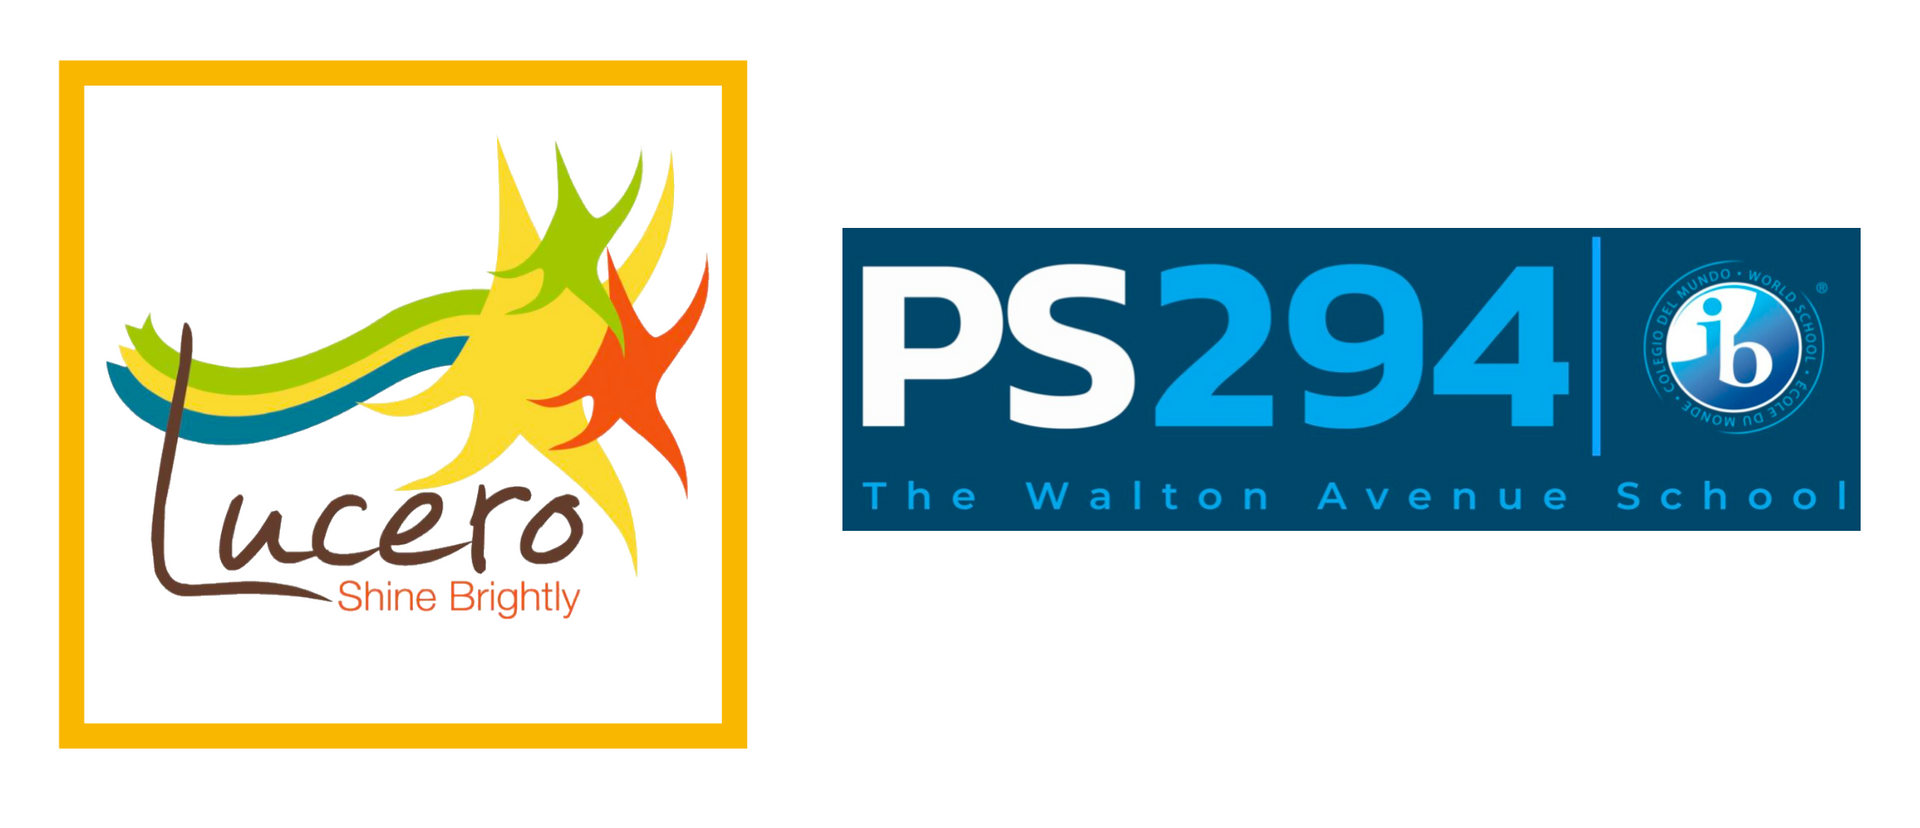 The logos of PS 311 and PS 294 displayed together, side by side